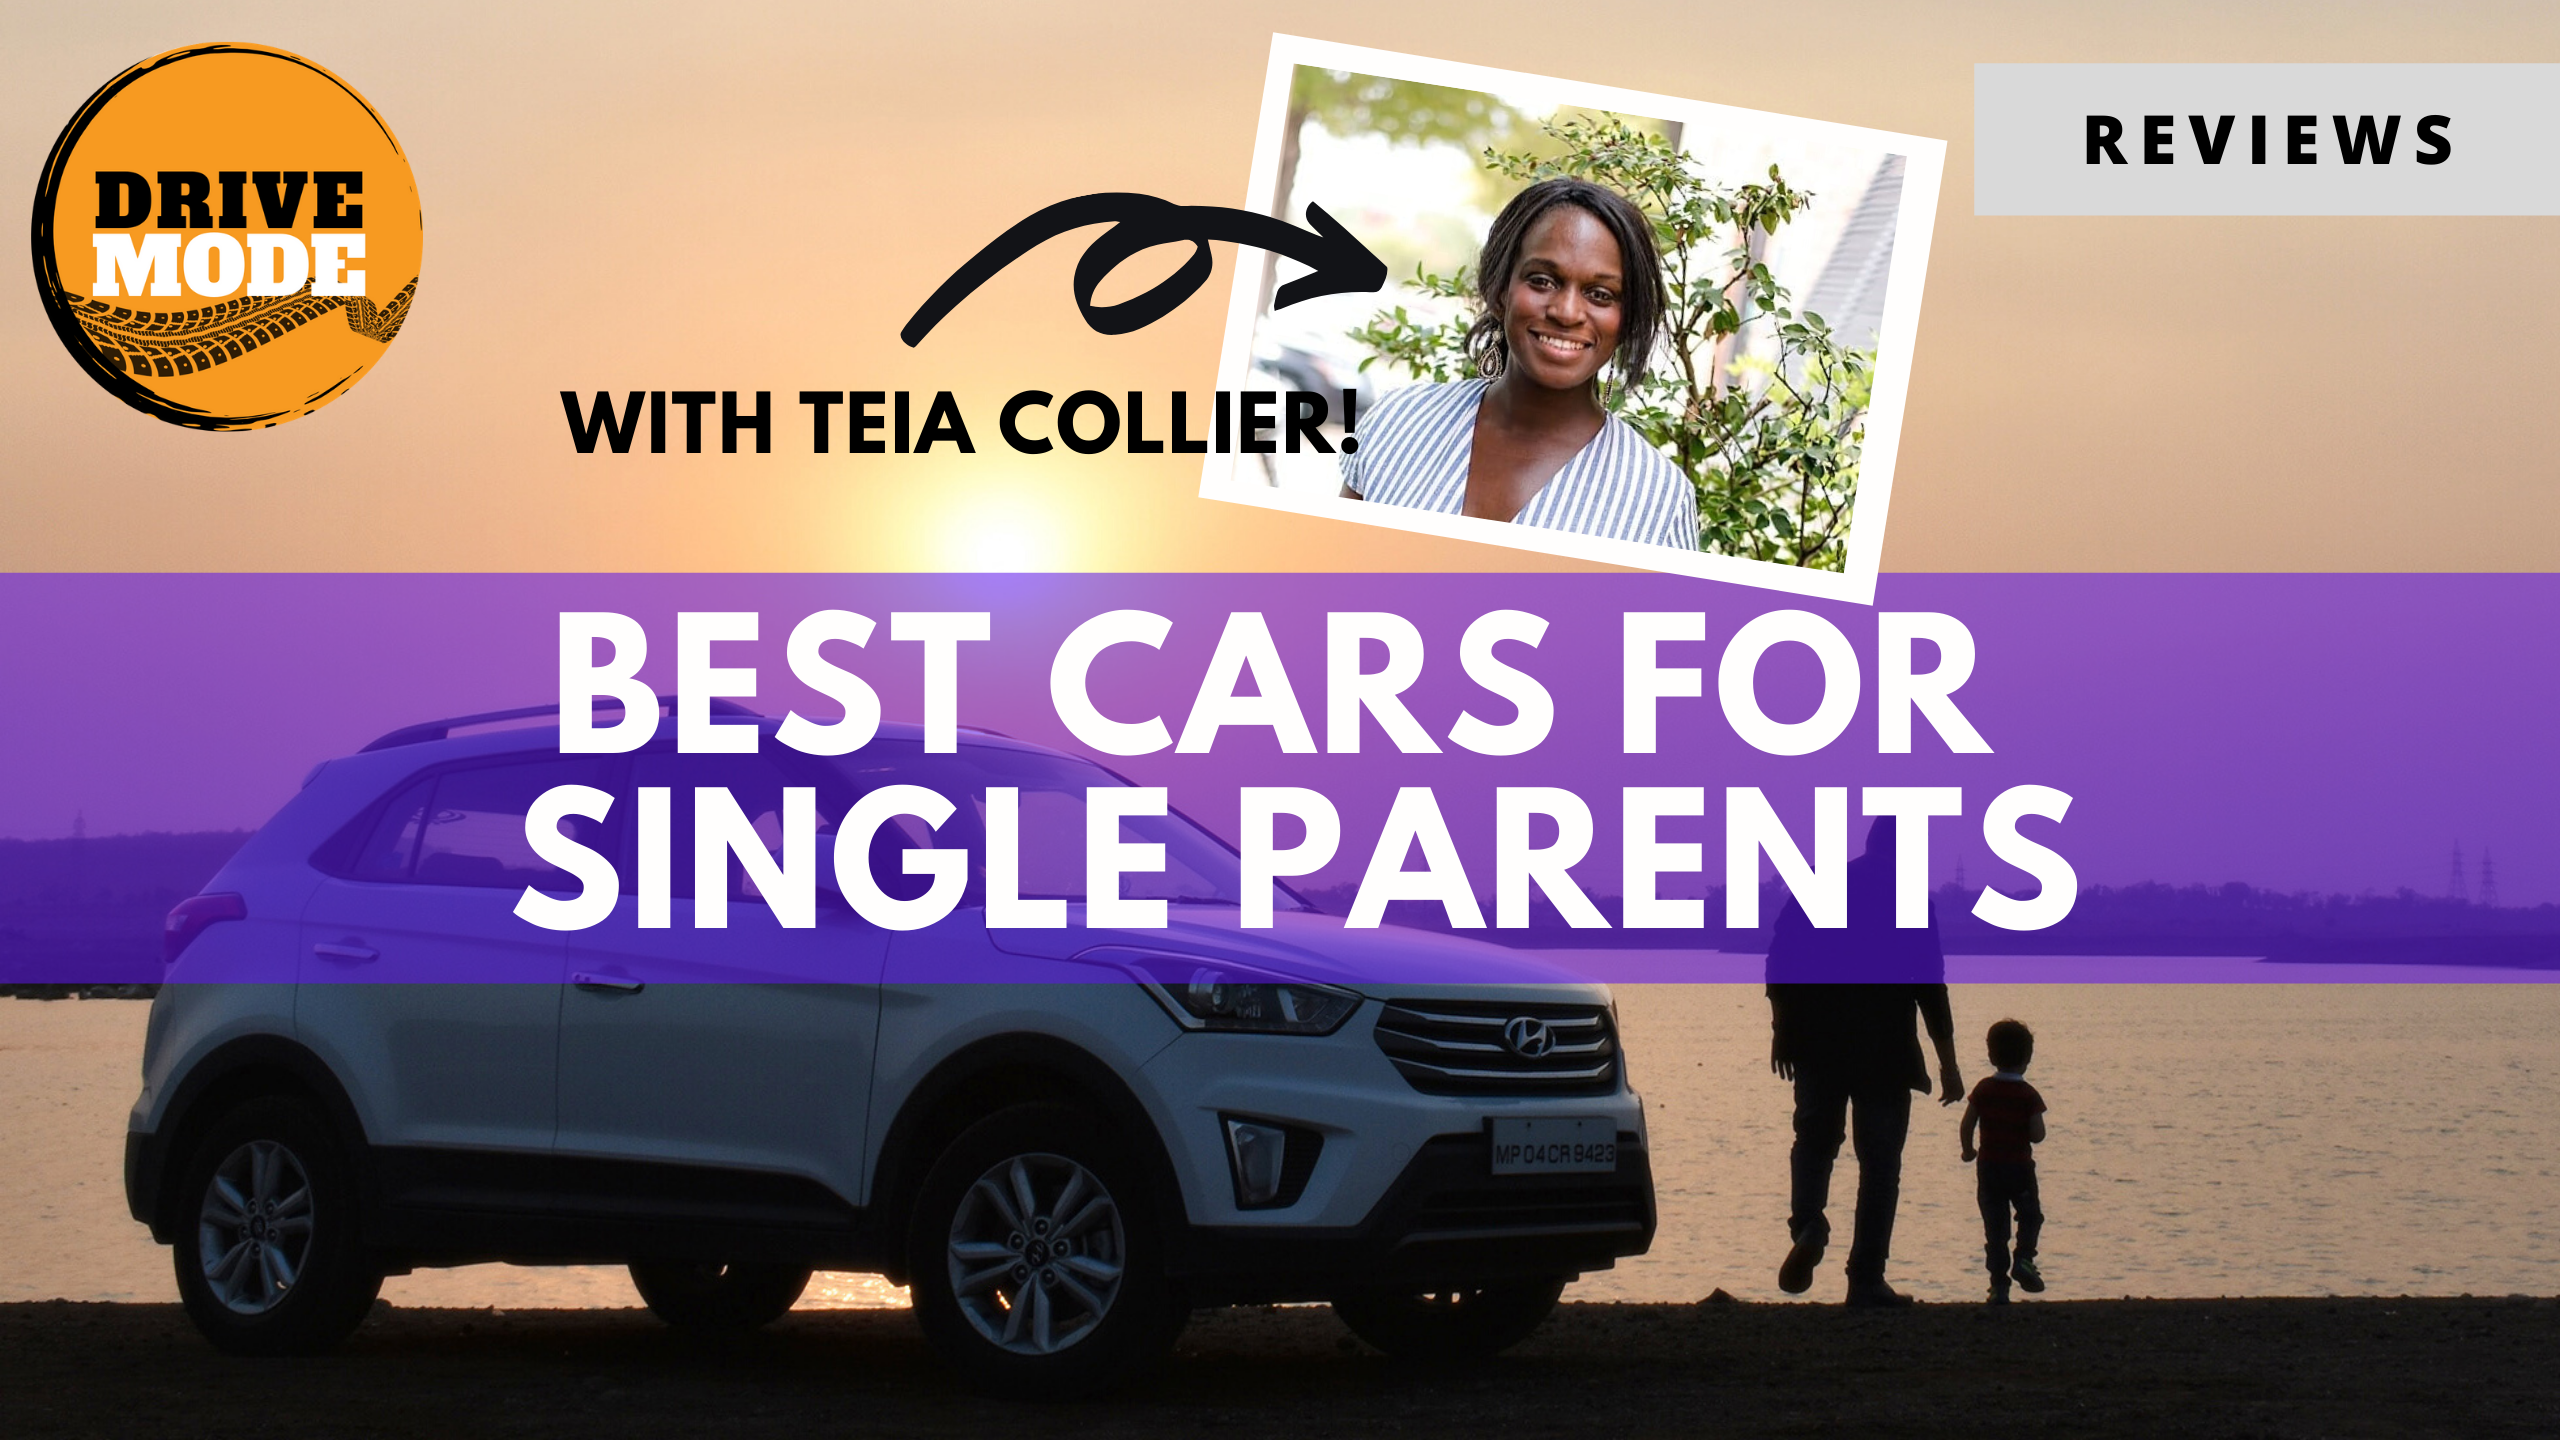 Best Cars for Single Parents with Teia Collier